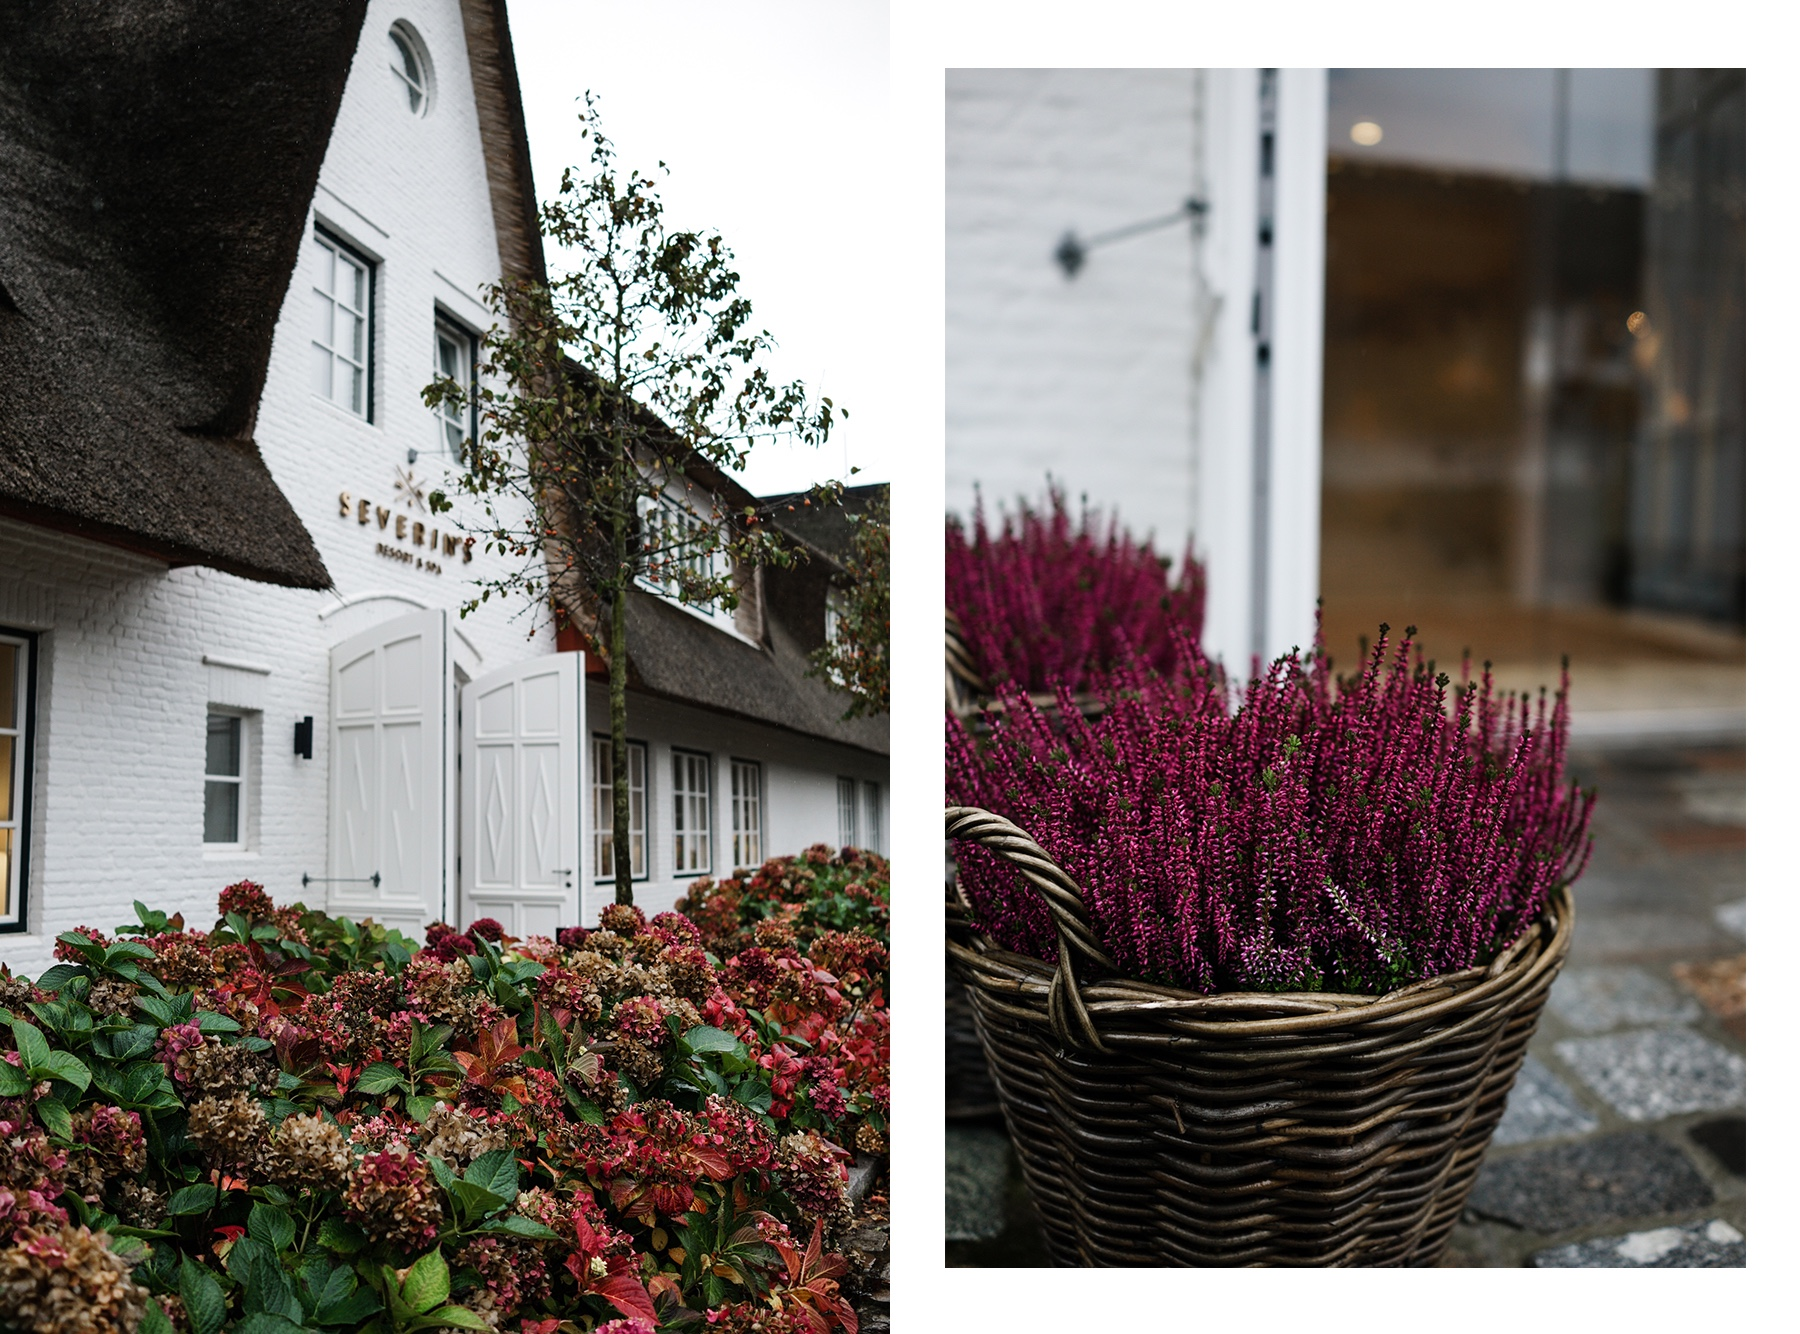 style-shiver-travel-sylt-severins-2